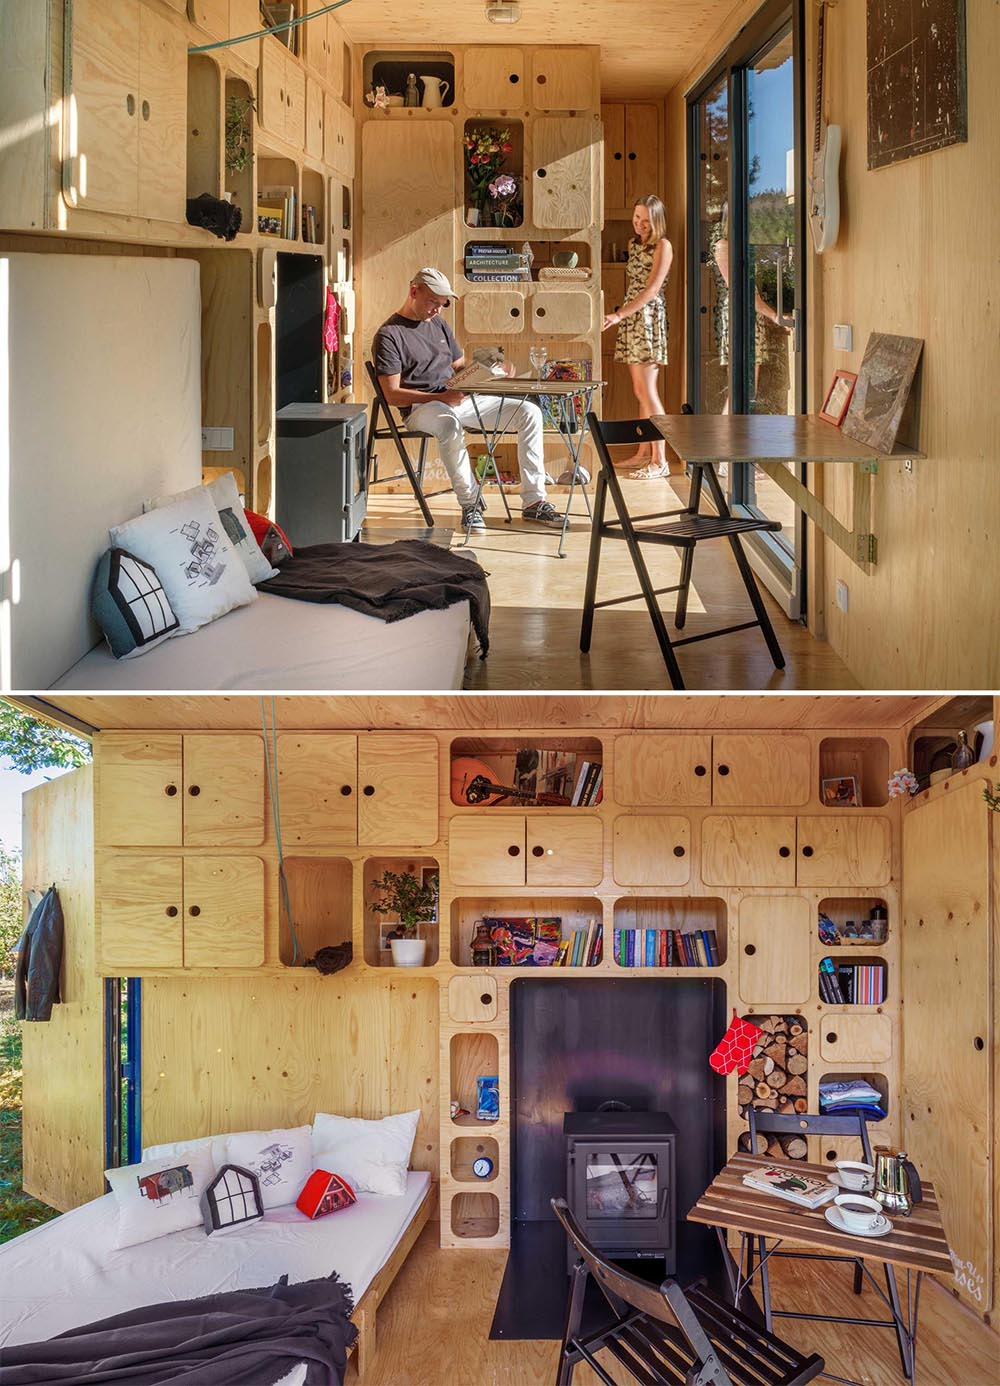 A tiny home made from a shipping container has a fold-down bed, plenty of storage cabinets, and a fireplace.